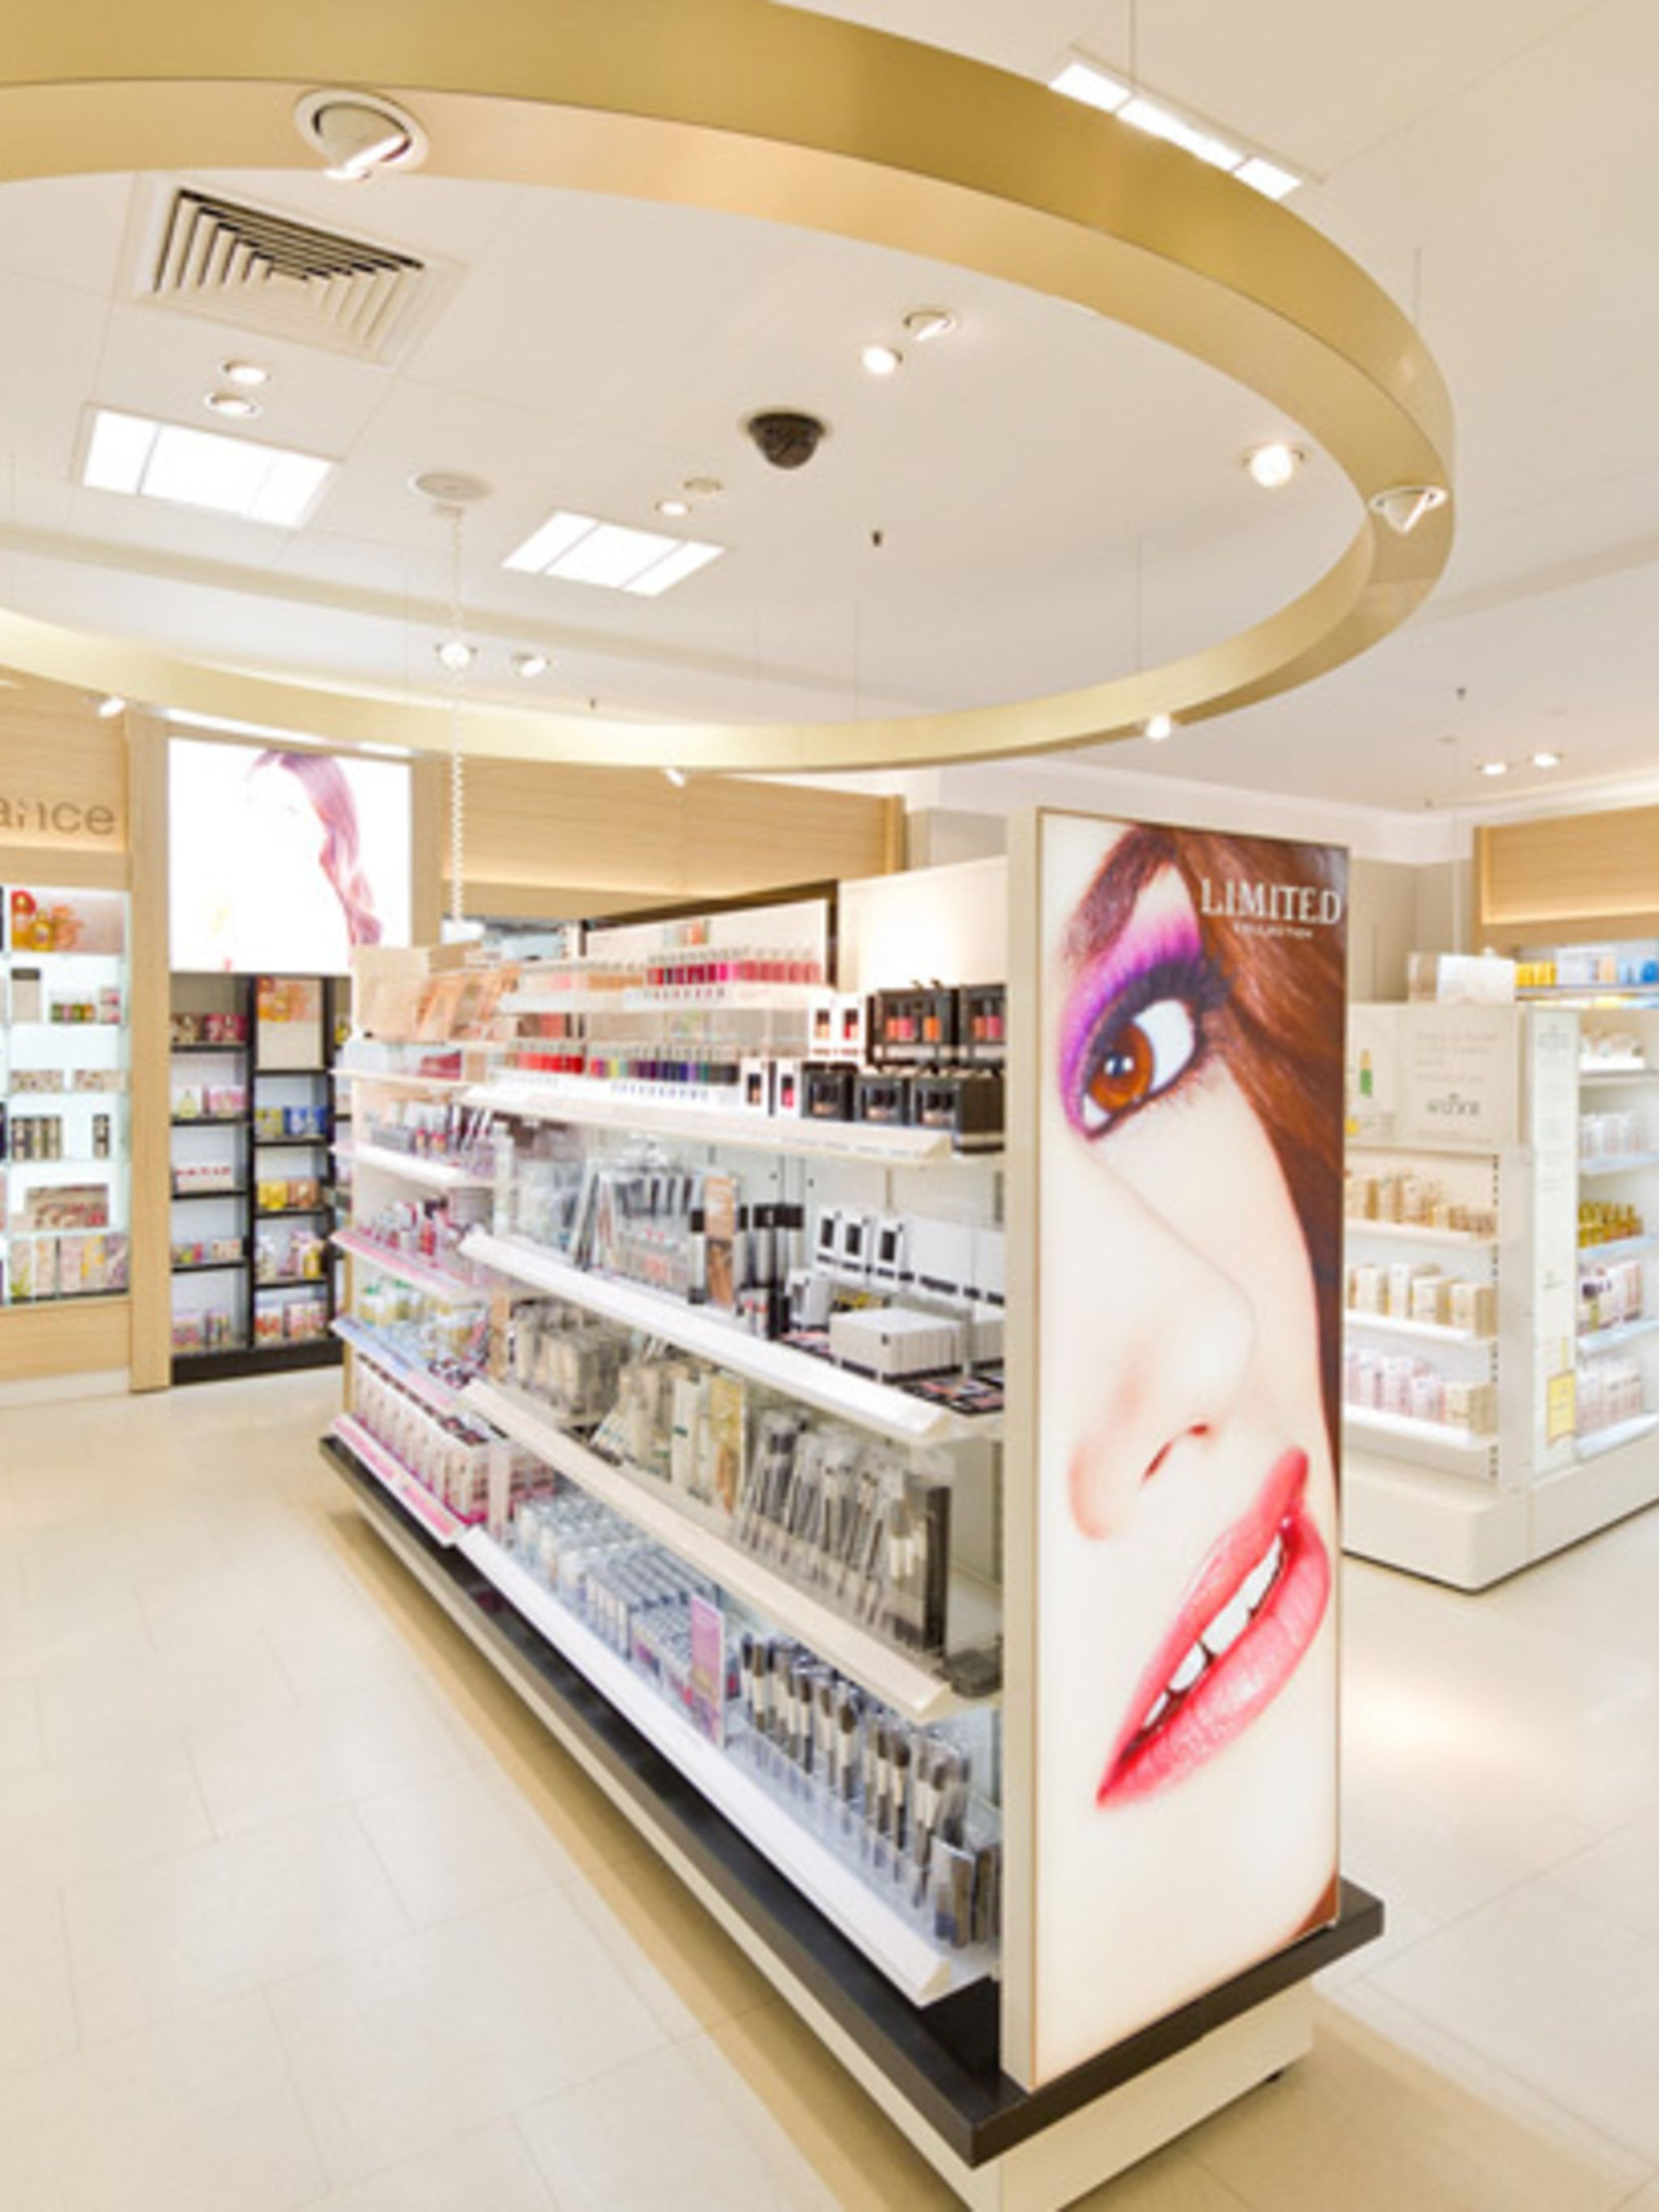 <p><strong>USP: </strong>Marks and Spencer have handpicked an amazing range of brands to bring you niche beauty names from Europe and the USA. Their trained Beauty Advisors will help you find exactly what you're looking for without pushing you towards one